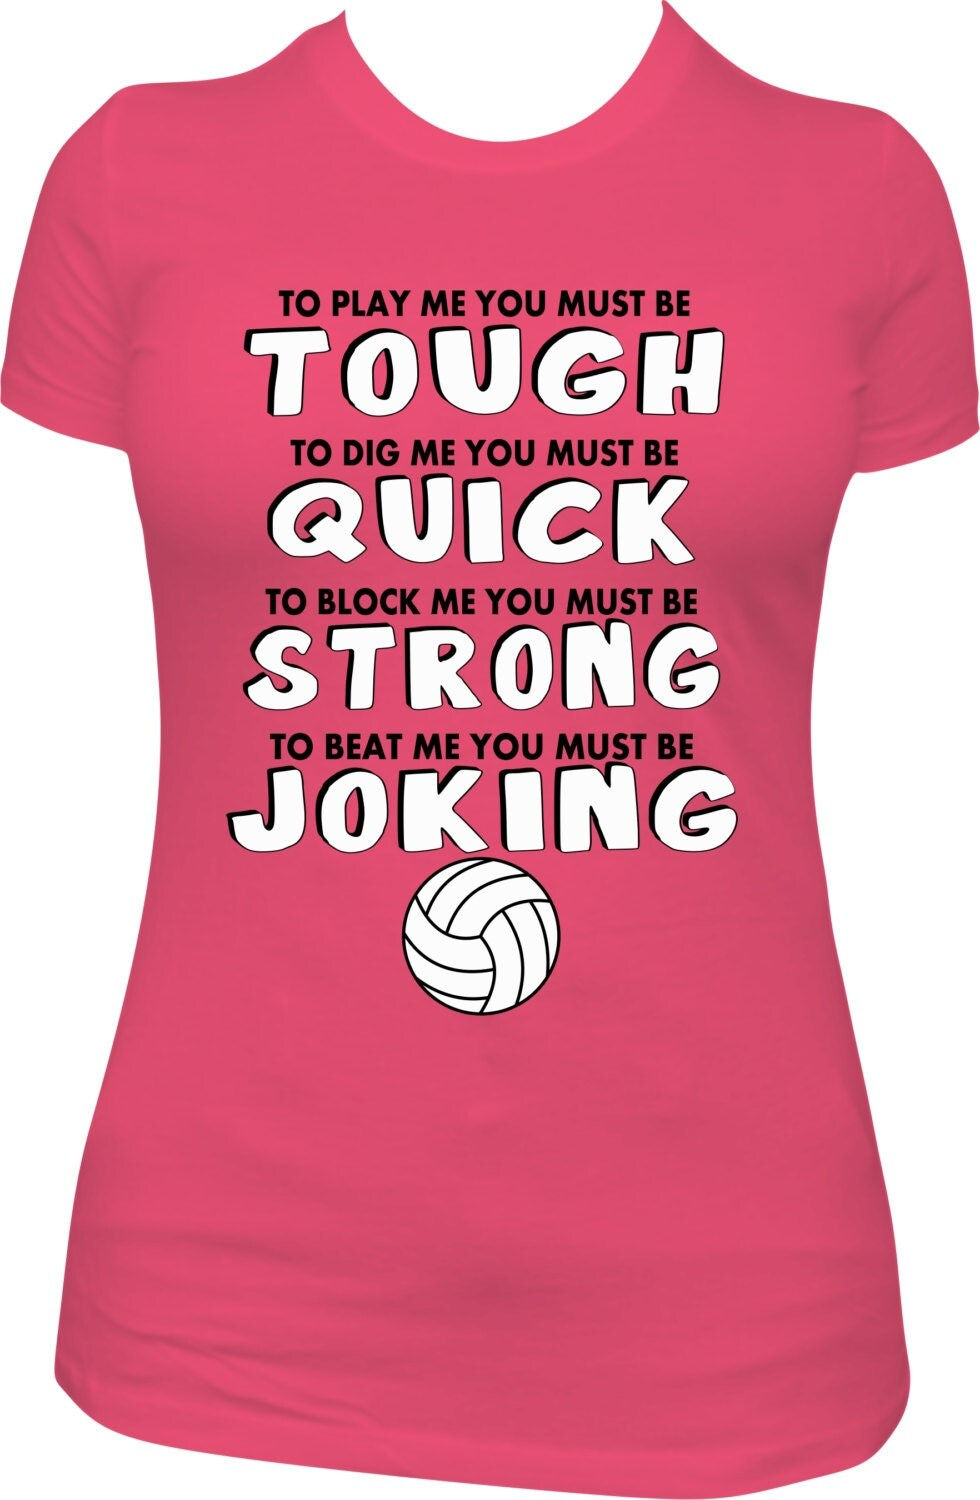 Volleyball t shirt volleyball tee volleyball shirt for Volleyball custom t shirts